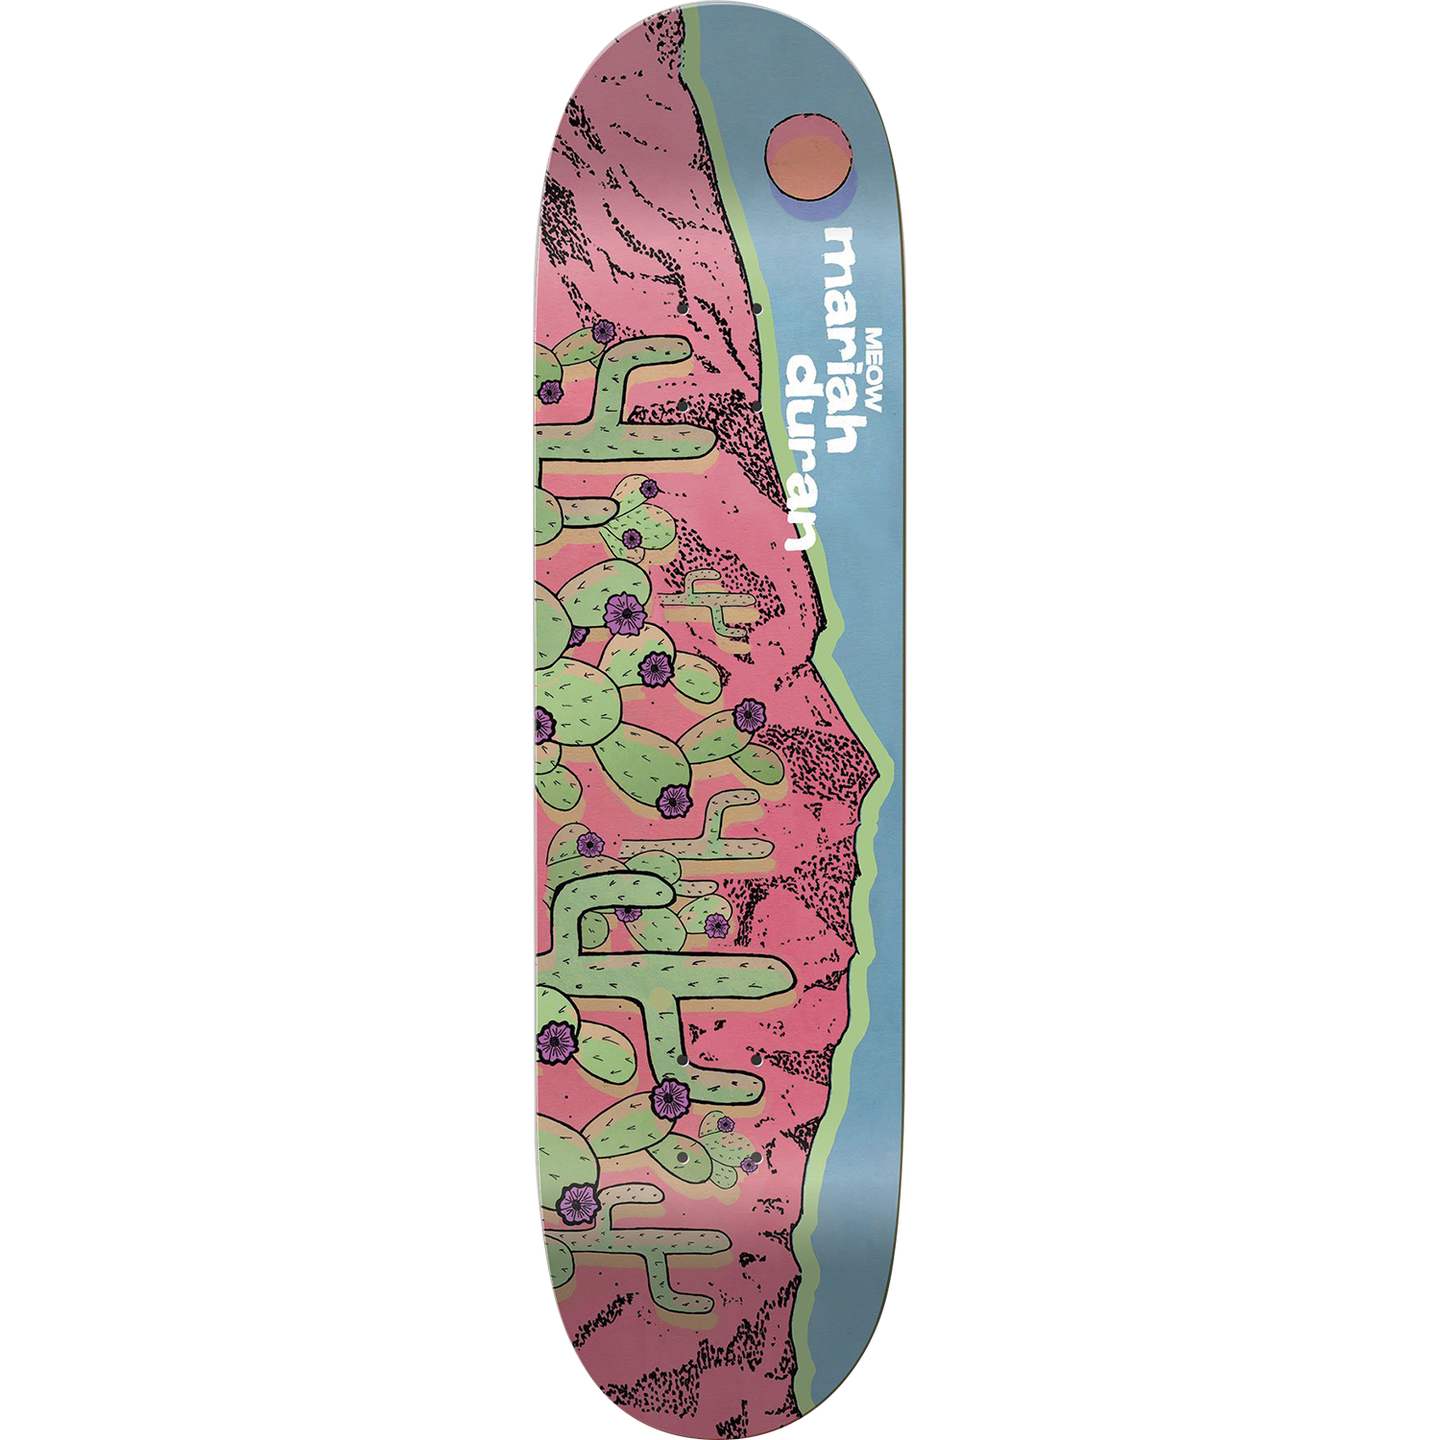 Meow Skateboards Maria Duran Sandias Pro Model Deck 7.75